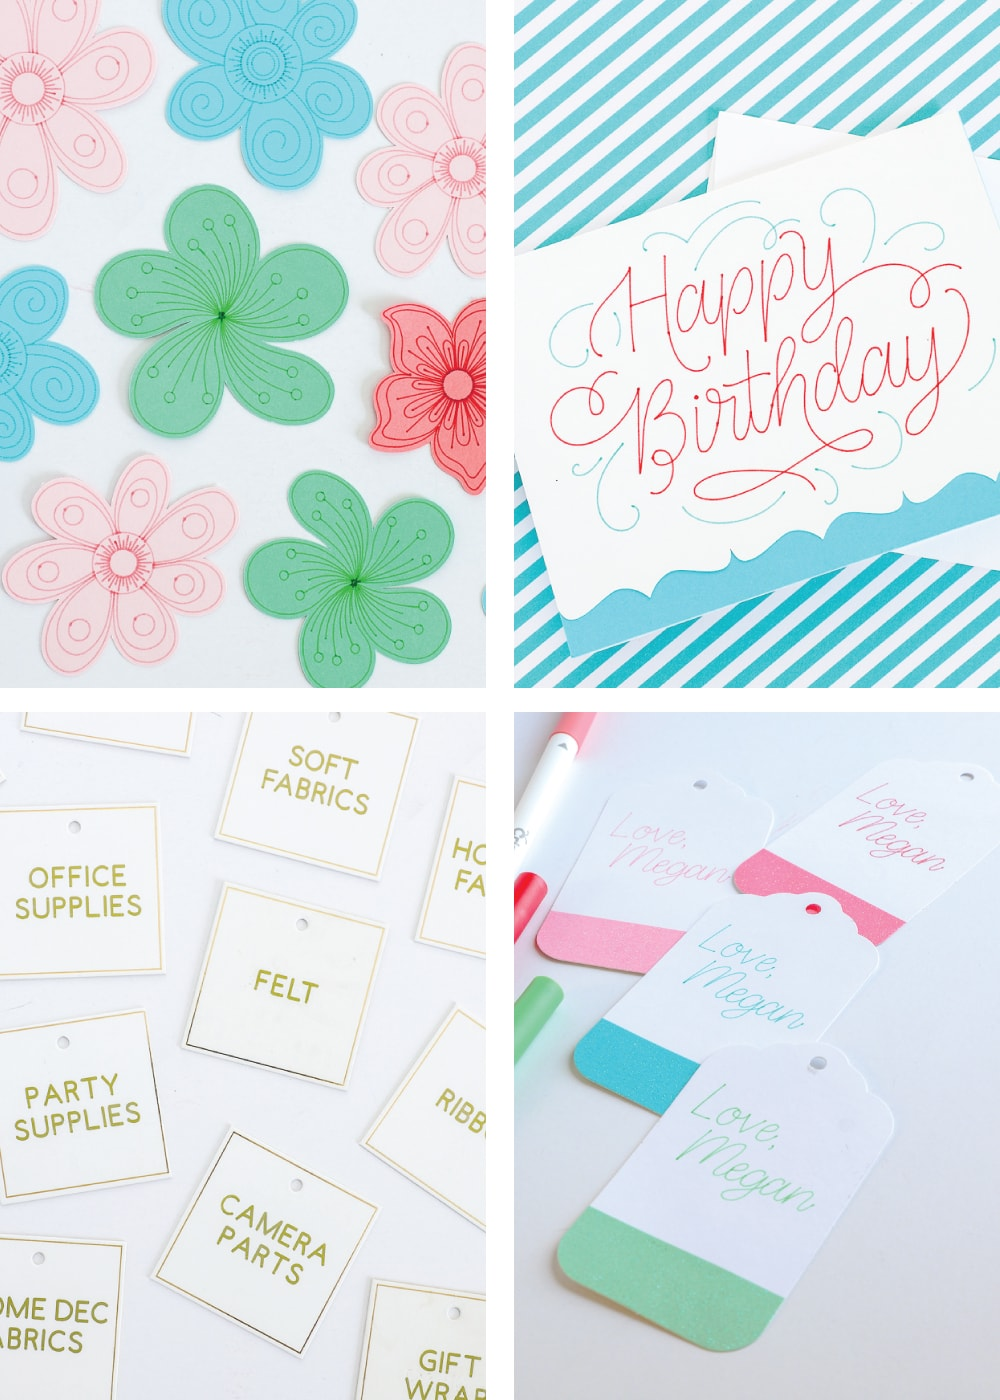 examples of different projects you can make using a cricut machine